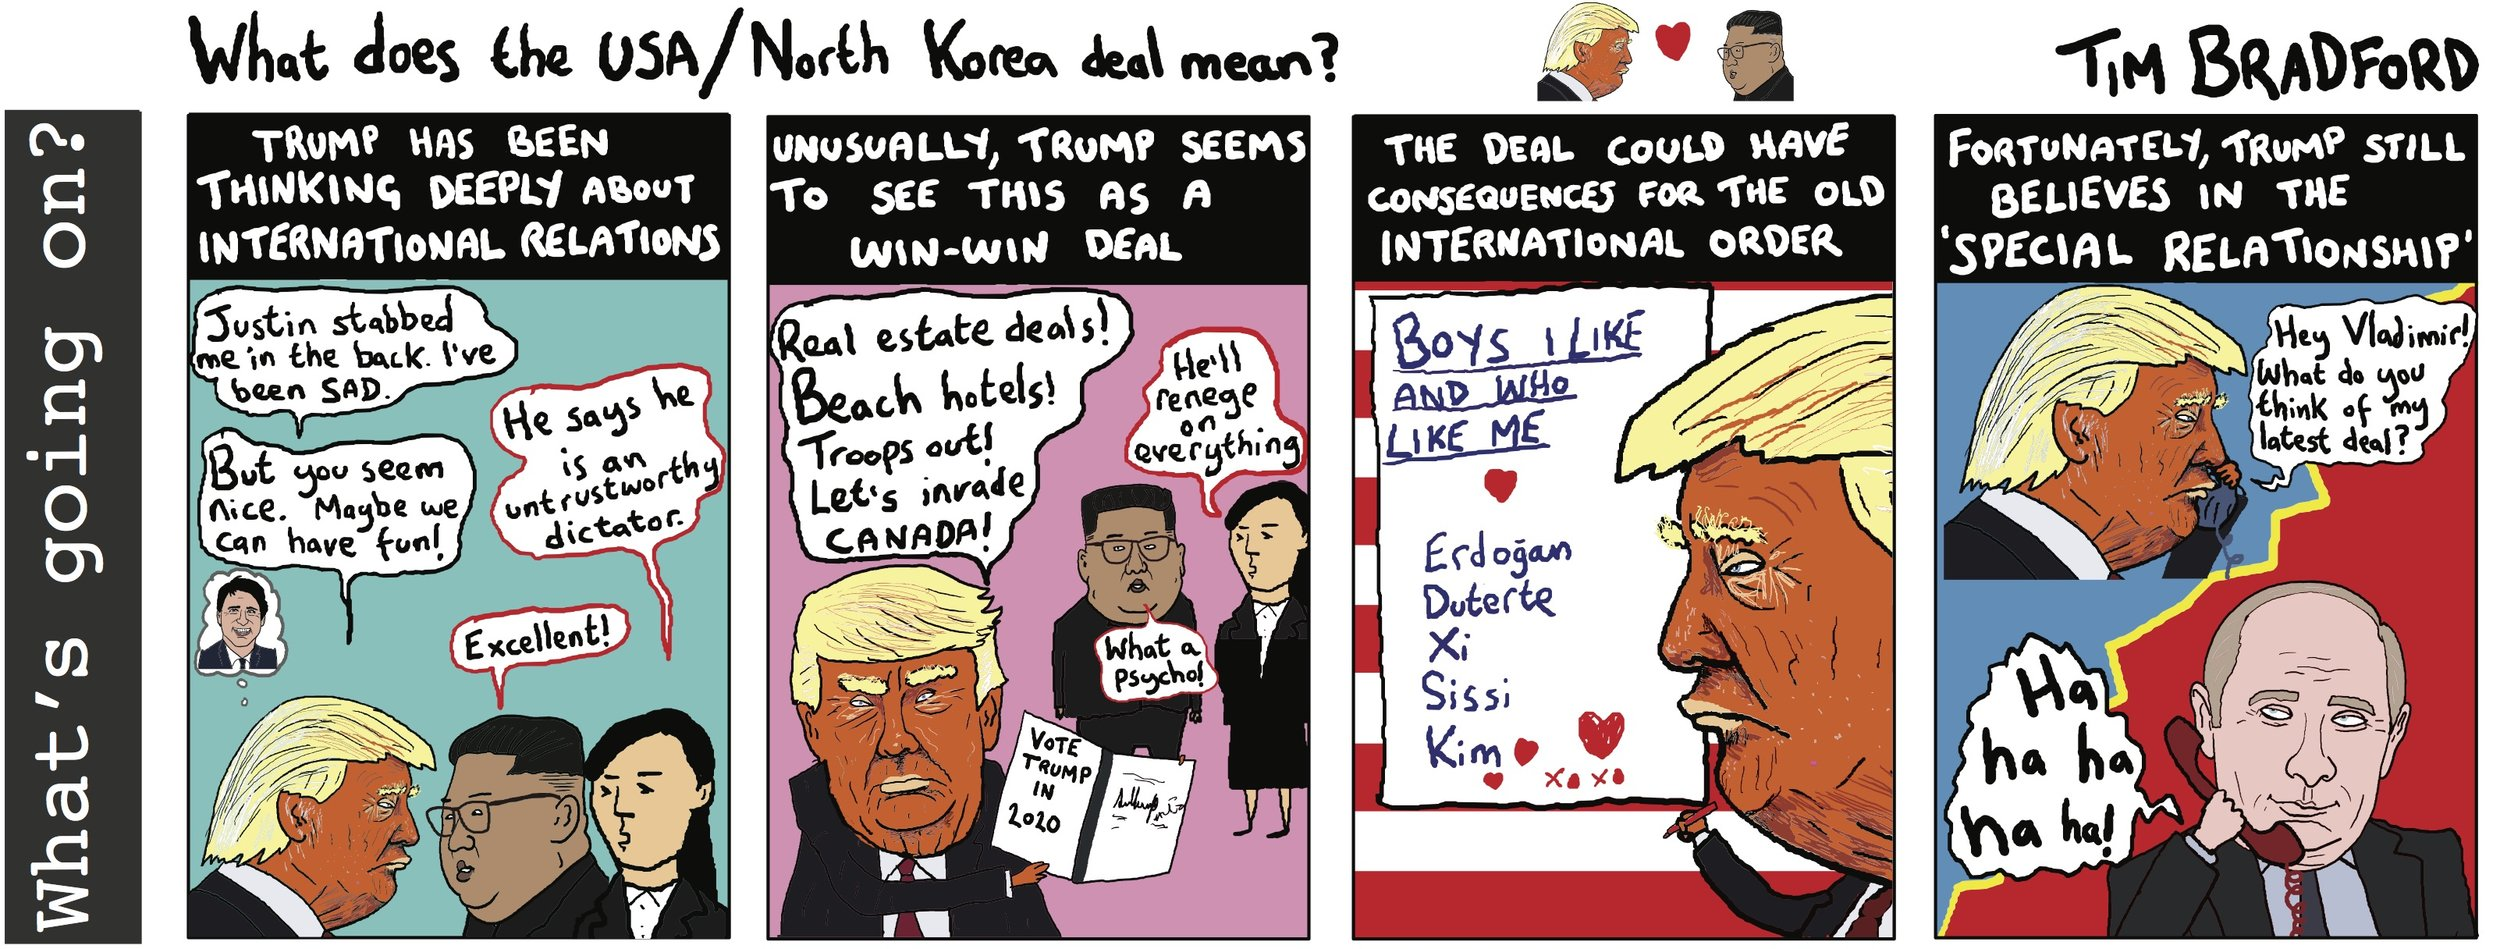 What does the USA/North Korea deal mean? - 13/06/2018